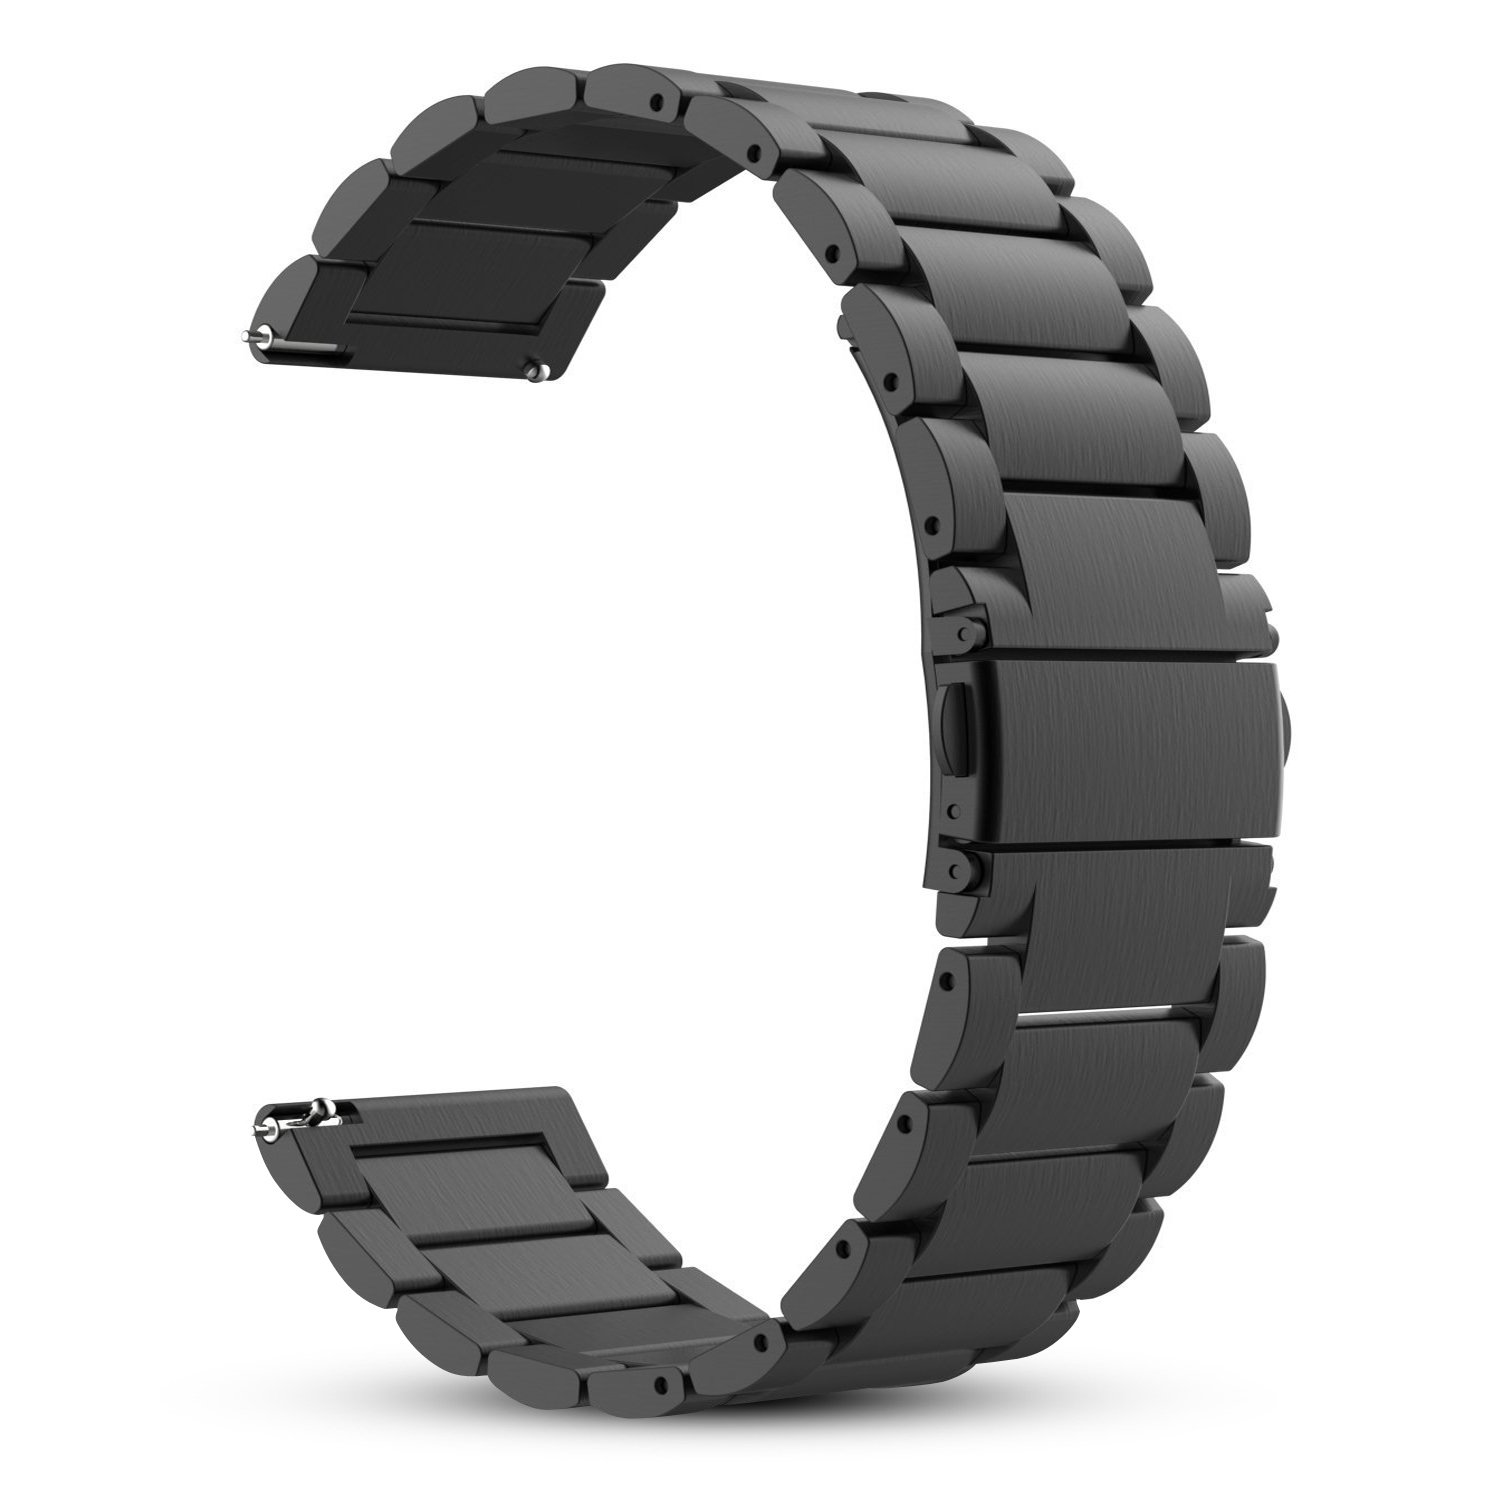 For Gear S3 Frontier/Classic Watch Band, Fintie 22mm Stainless Steel Metal Replacement Strap Bands for Samsung Gear S3 Frontier / S3 Classic and Moto 360 2nd Gen 46mm Smartwatch - Black